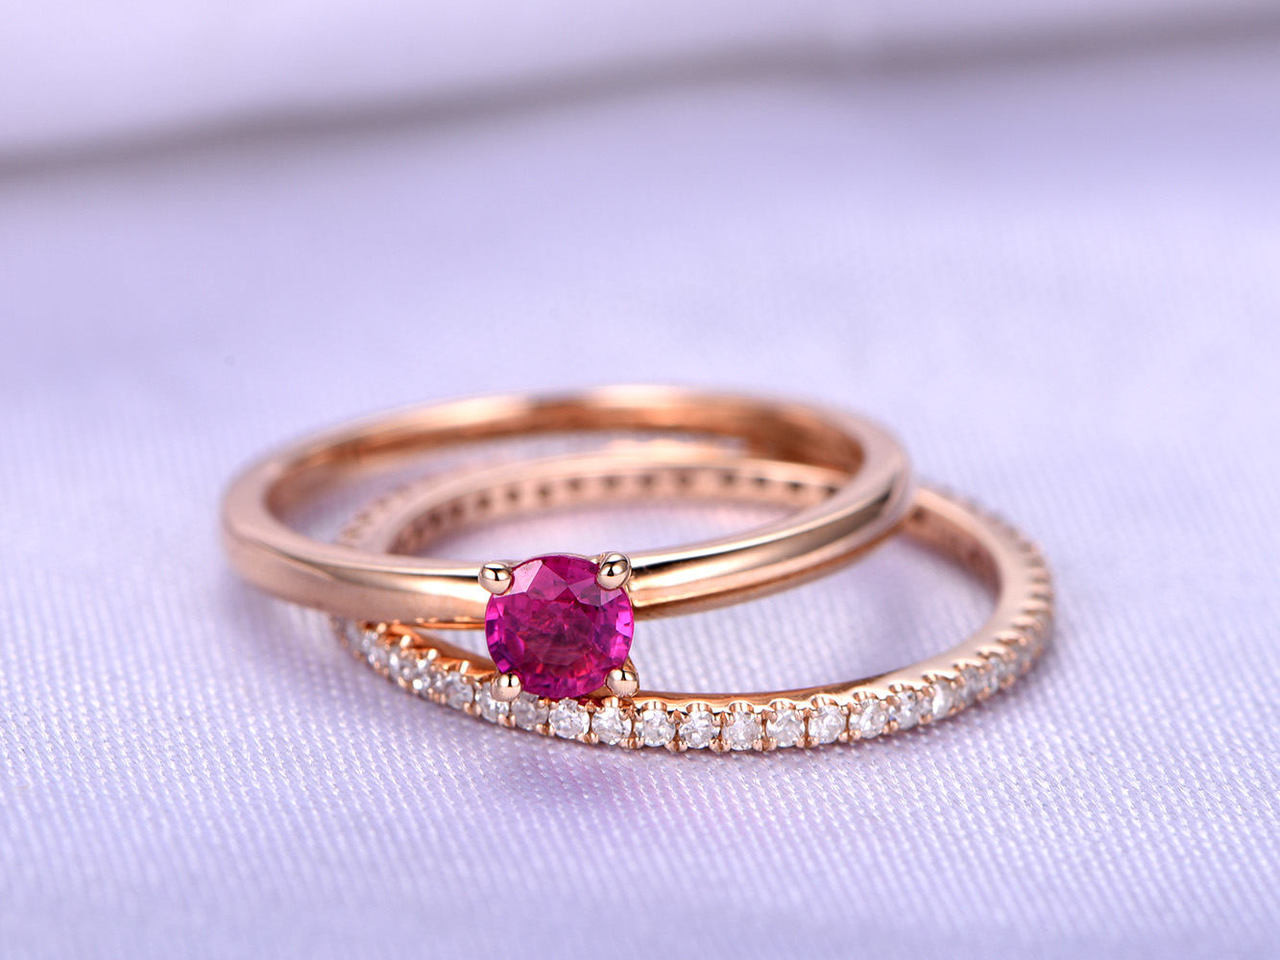 Beautiful Ruby Ring Ring,Wedding Ring Set,4mm Round Cut Natural Ruby Engagement Ring,